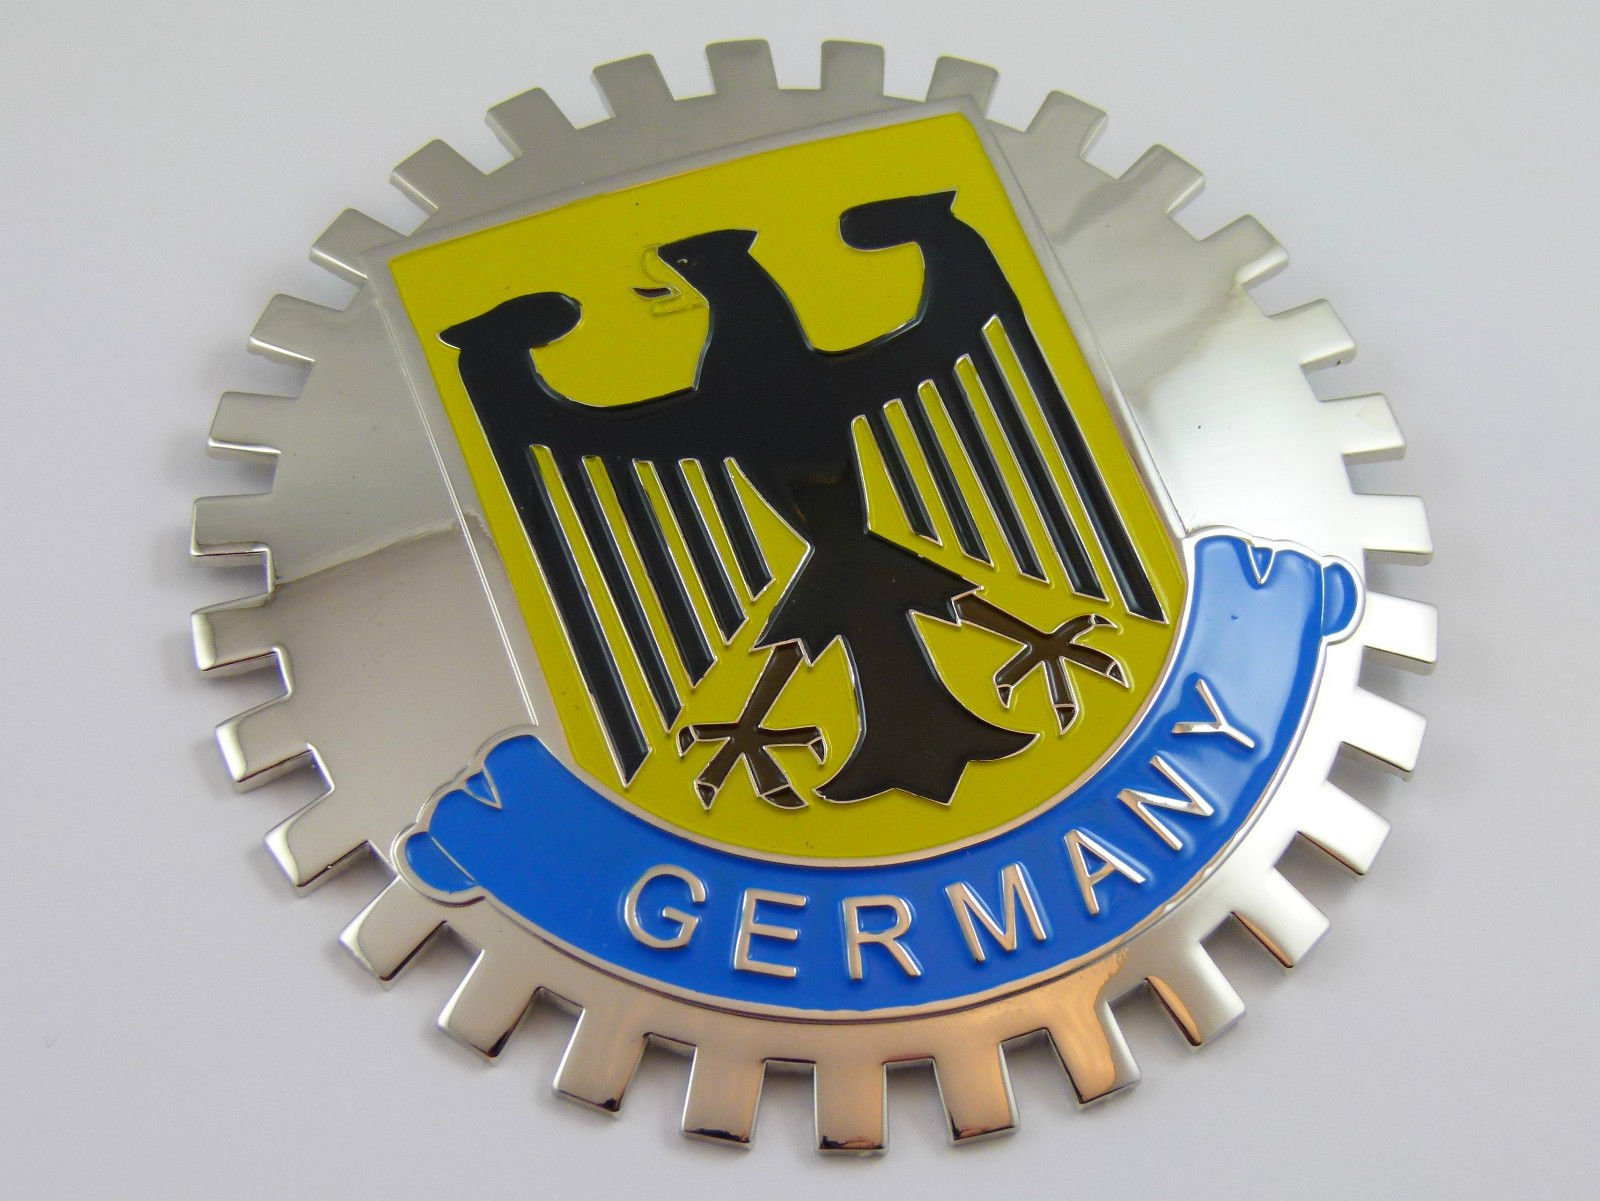 Aplique Parrilla Grille Badge Aleman Alemania Alemania Deuts